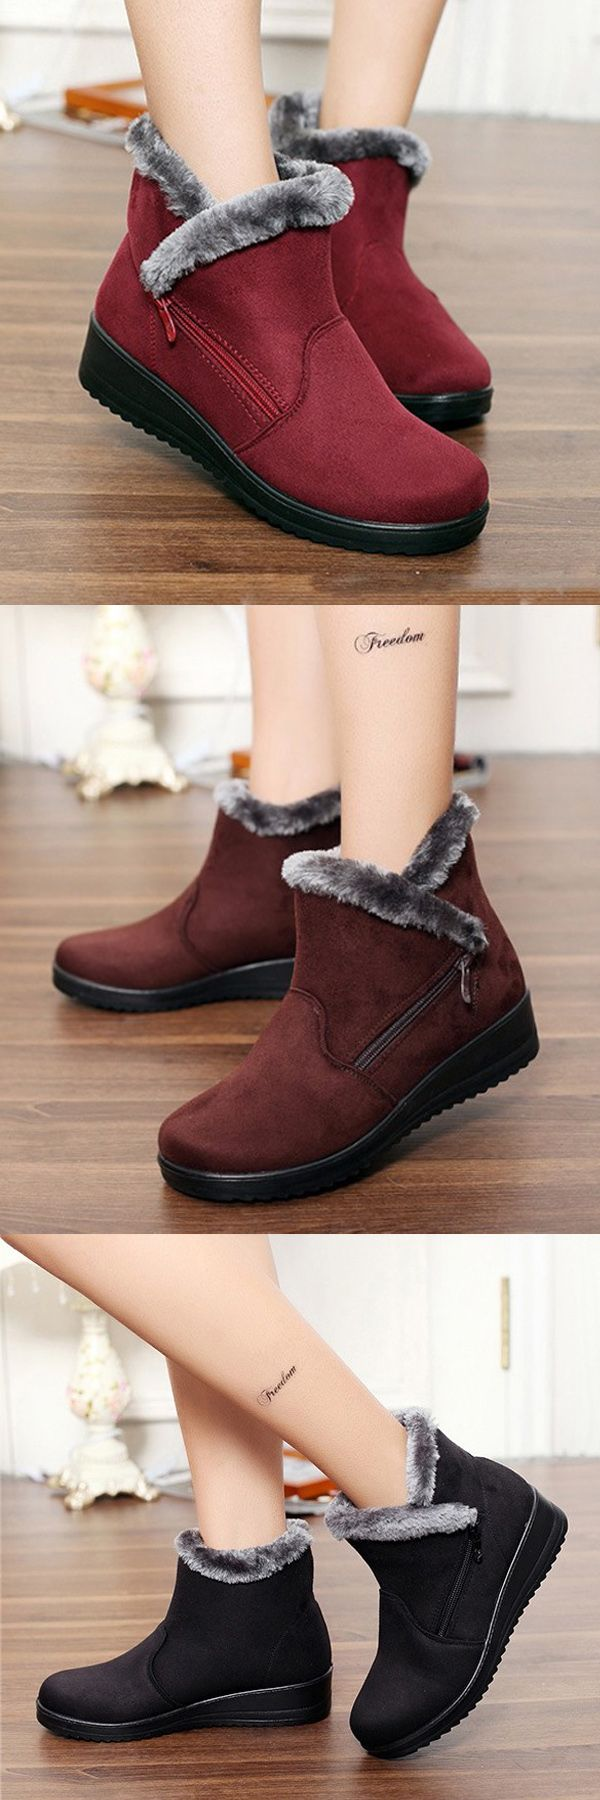 US$17.03  Winter Zipper Wedge Heel Keep Warm Ankle Snow Boots For Women